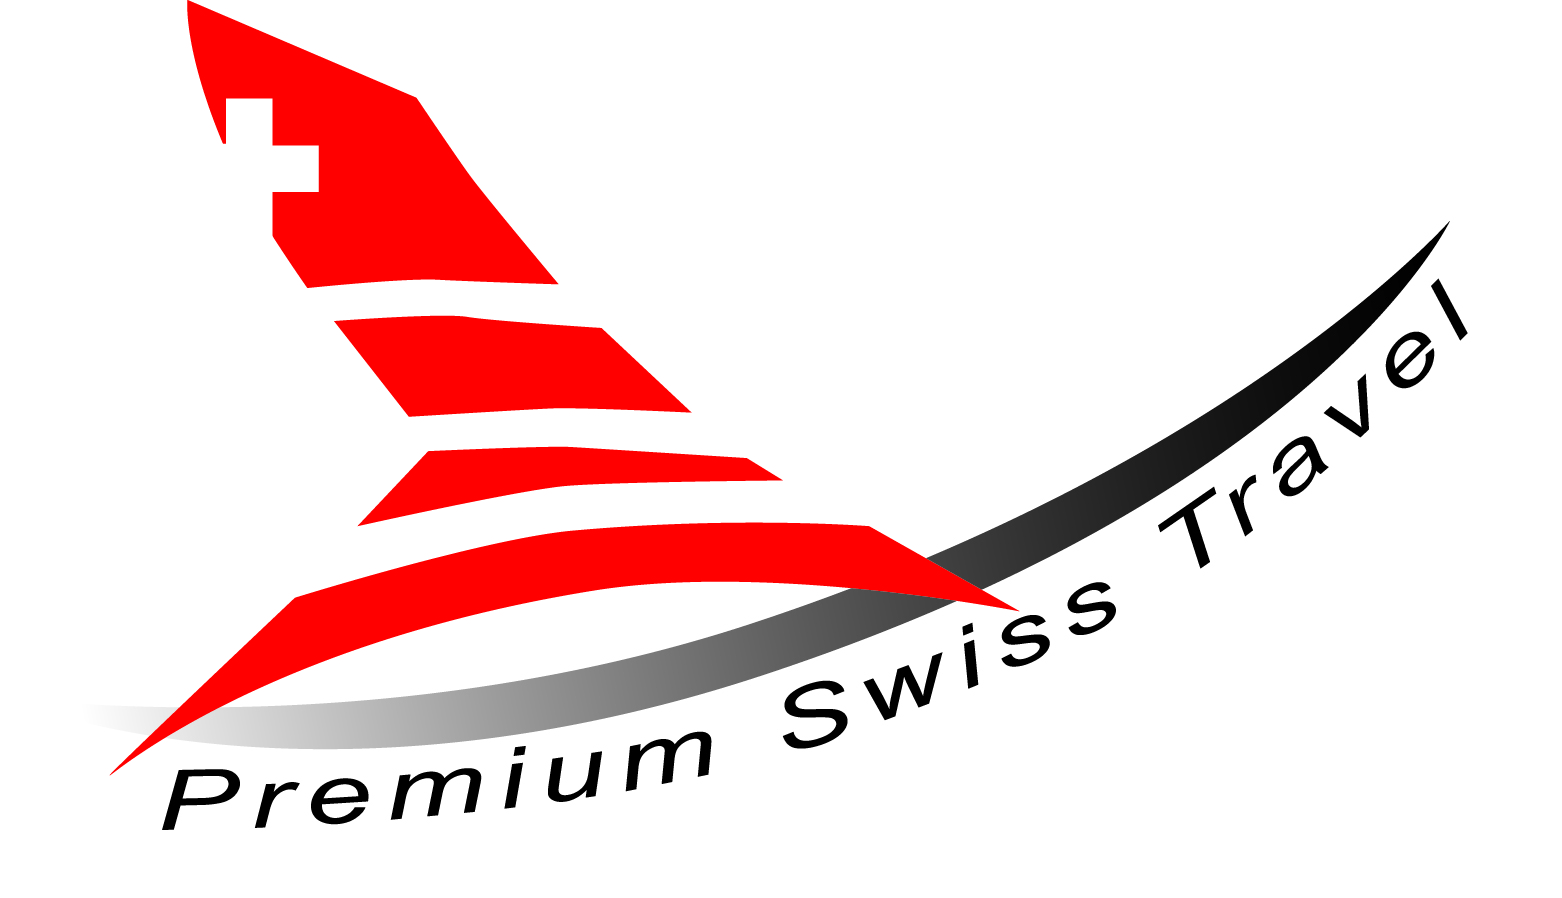 Premium Swiss Travel | Single unit Archives - Premium Swiss Travel